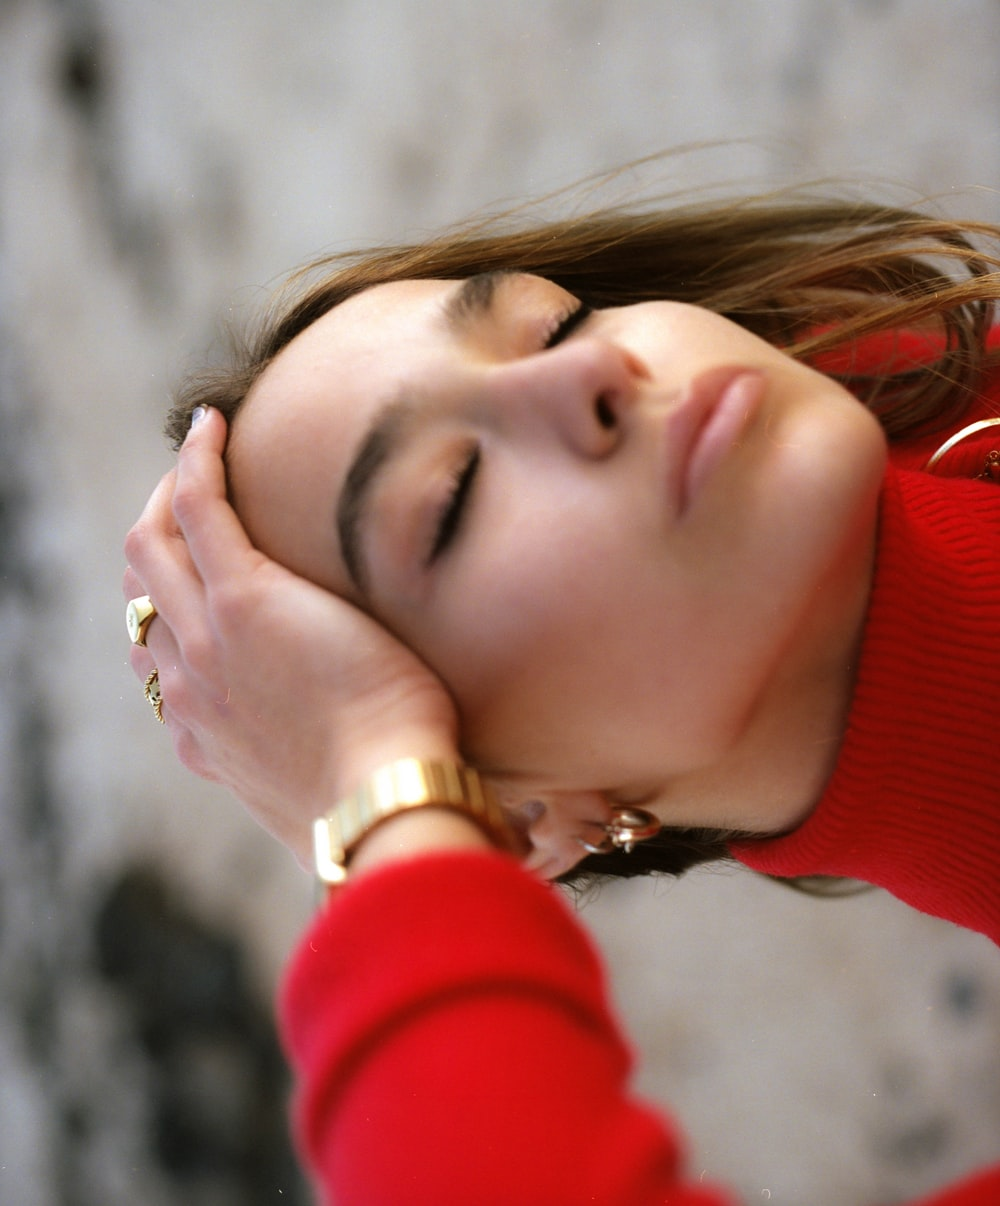 woman in red sweater holding her face